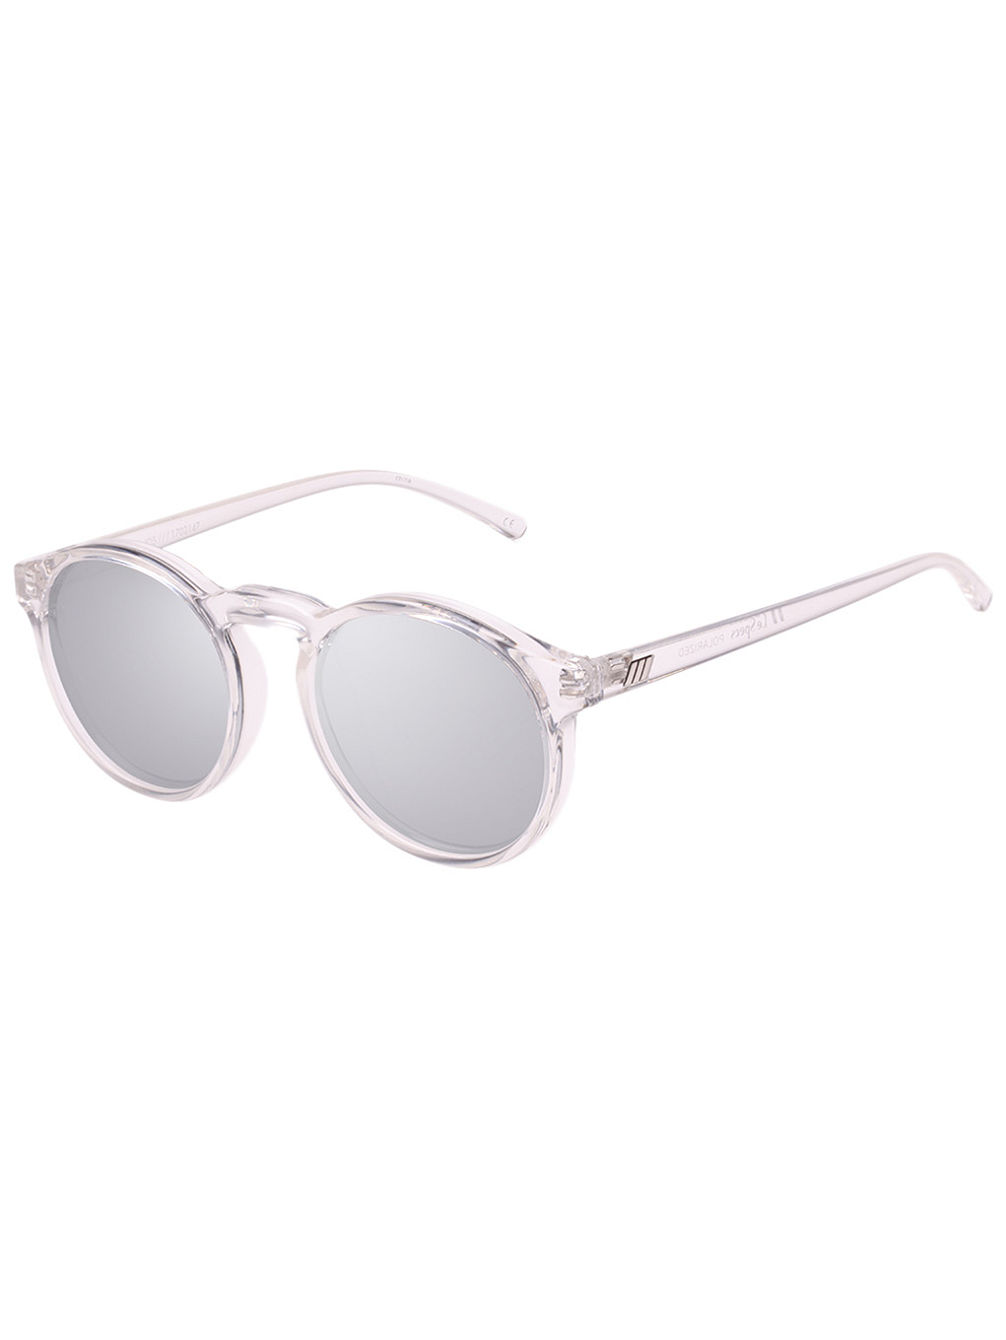 4c7ee341166a6 Buy Le Specs Cubanos Xtal Clear online at Blue Tomato